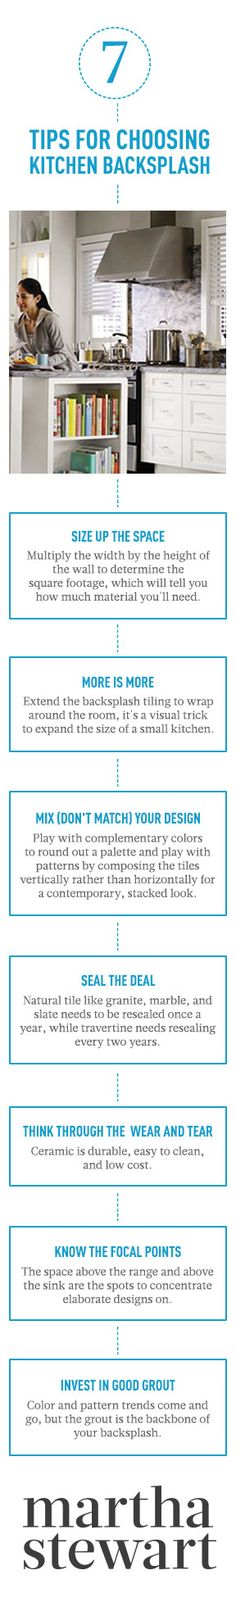 7 Tips for Choosing Kitchen Backsplash